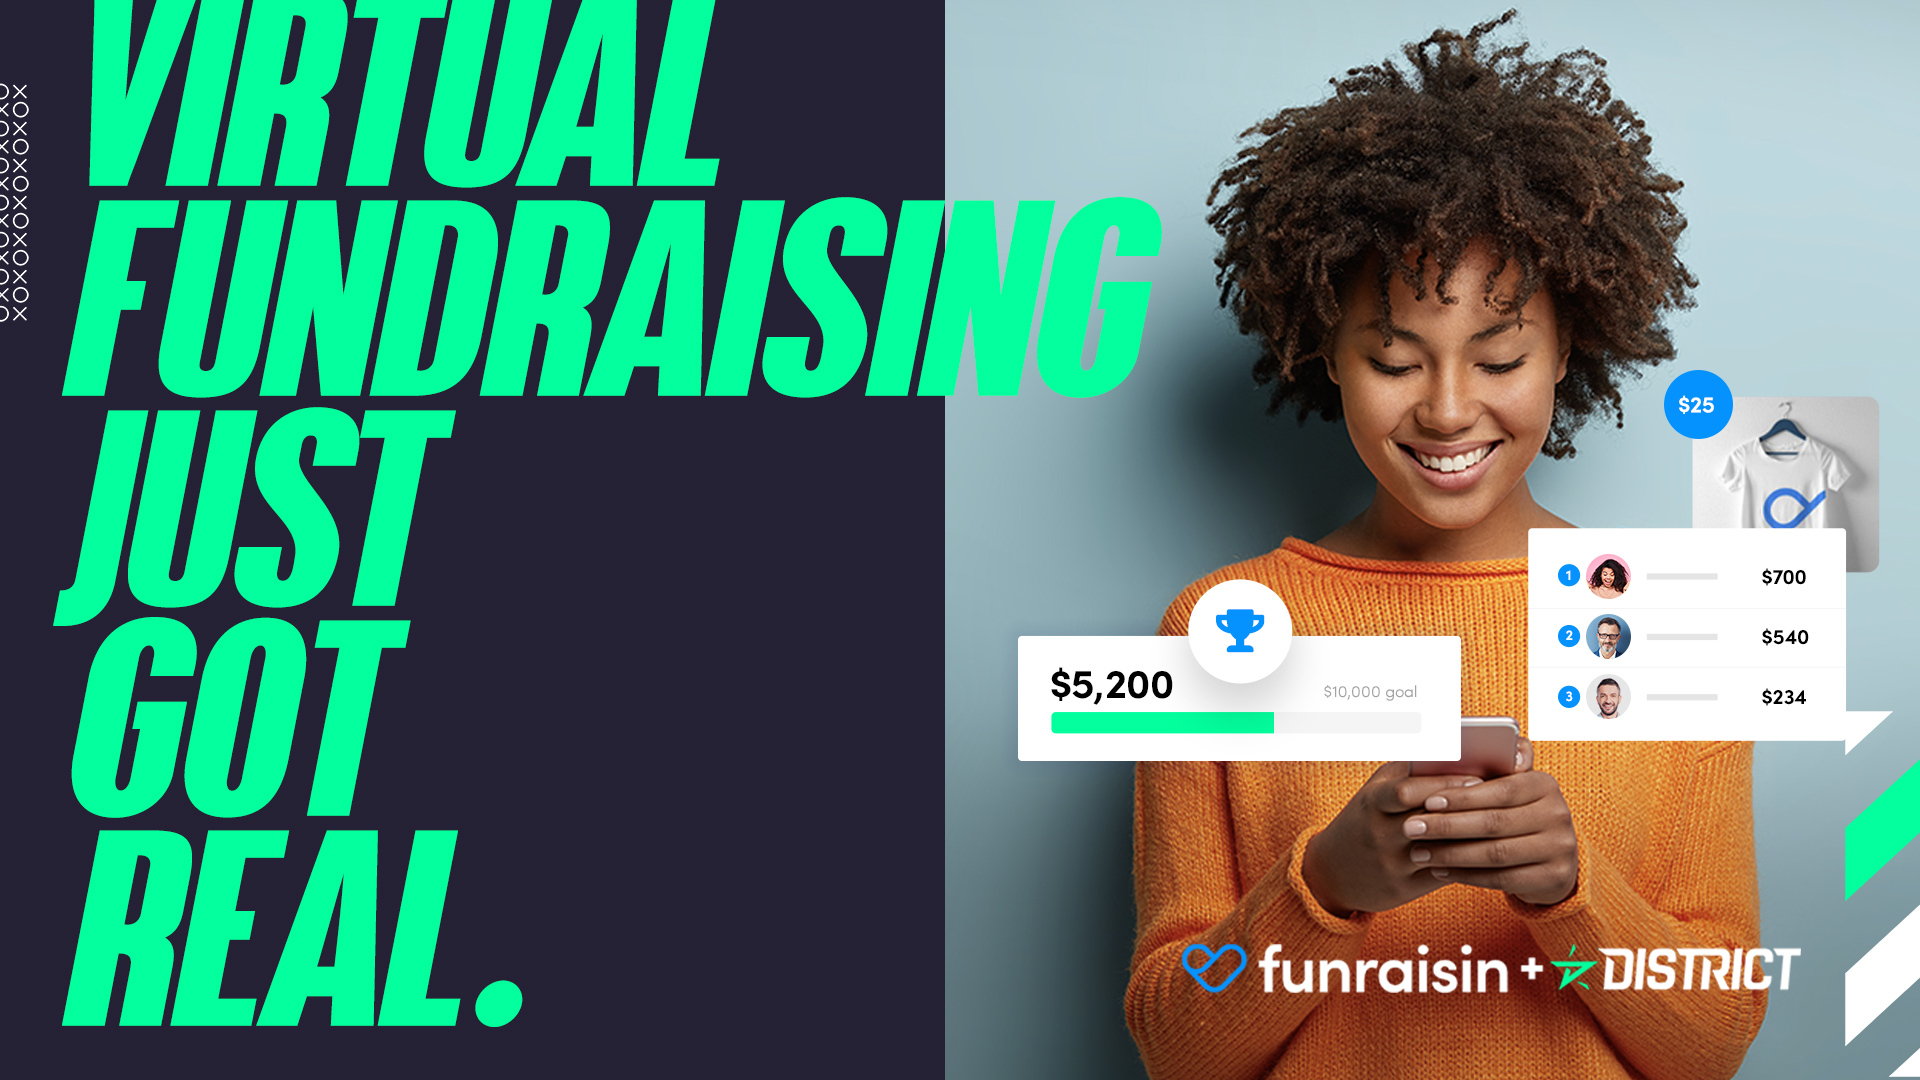 Virtual fundraising just got real